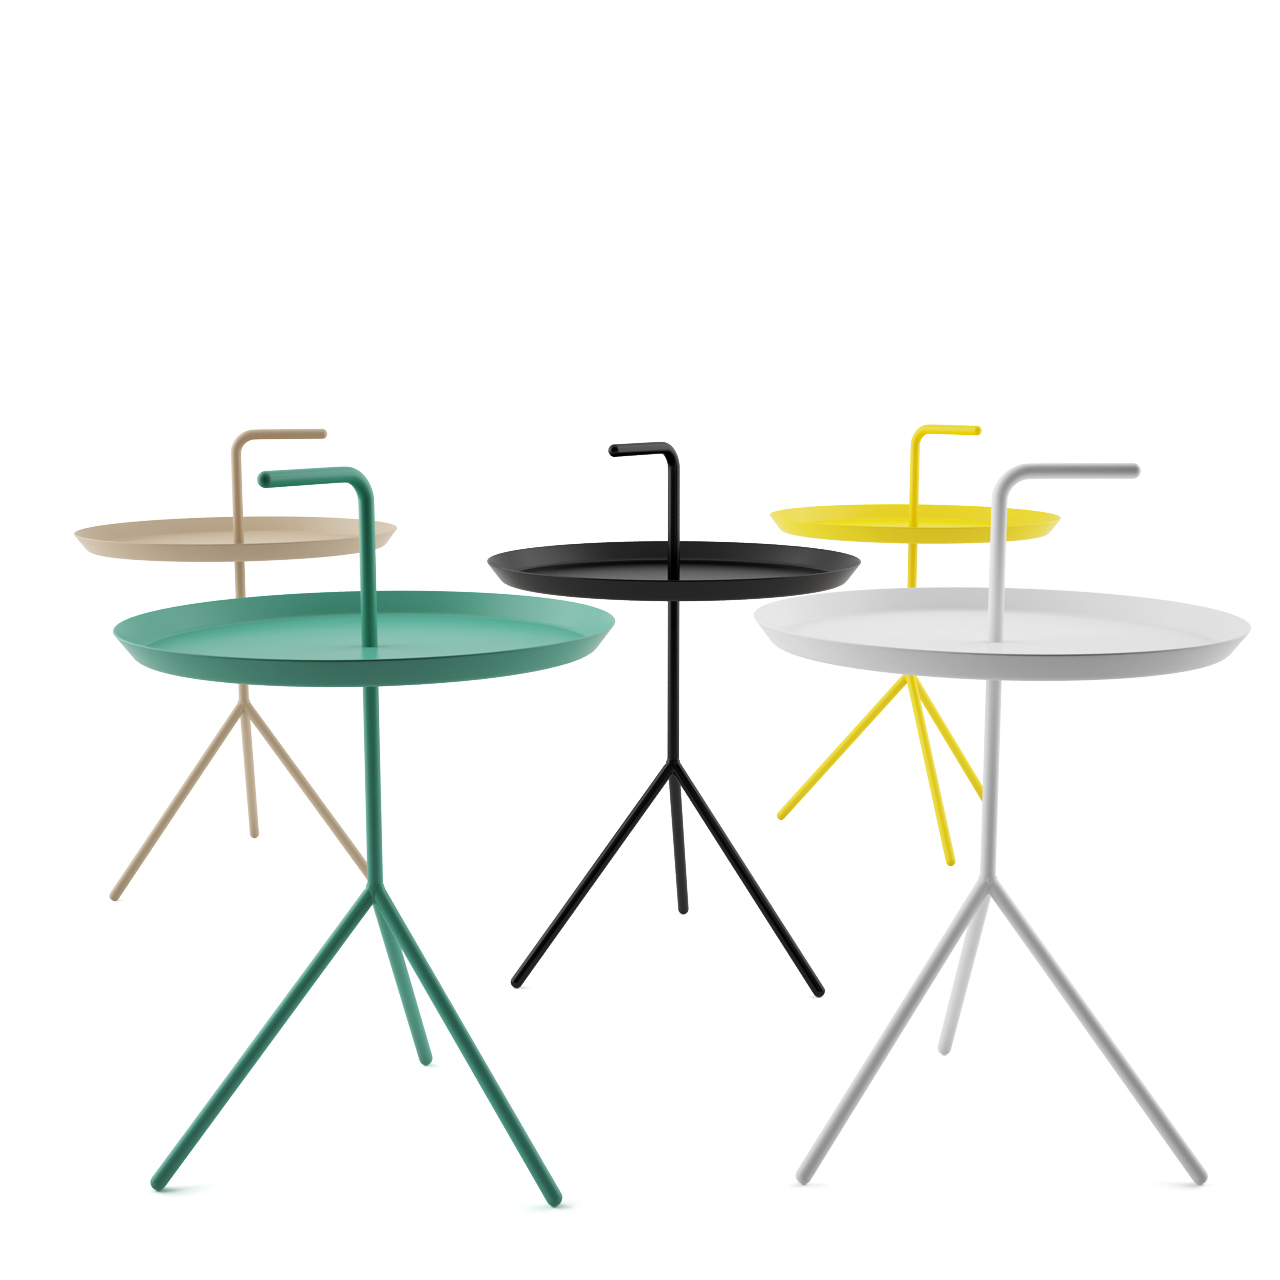 Hay Dlm Dlm Table By Hay Dimensiva